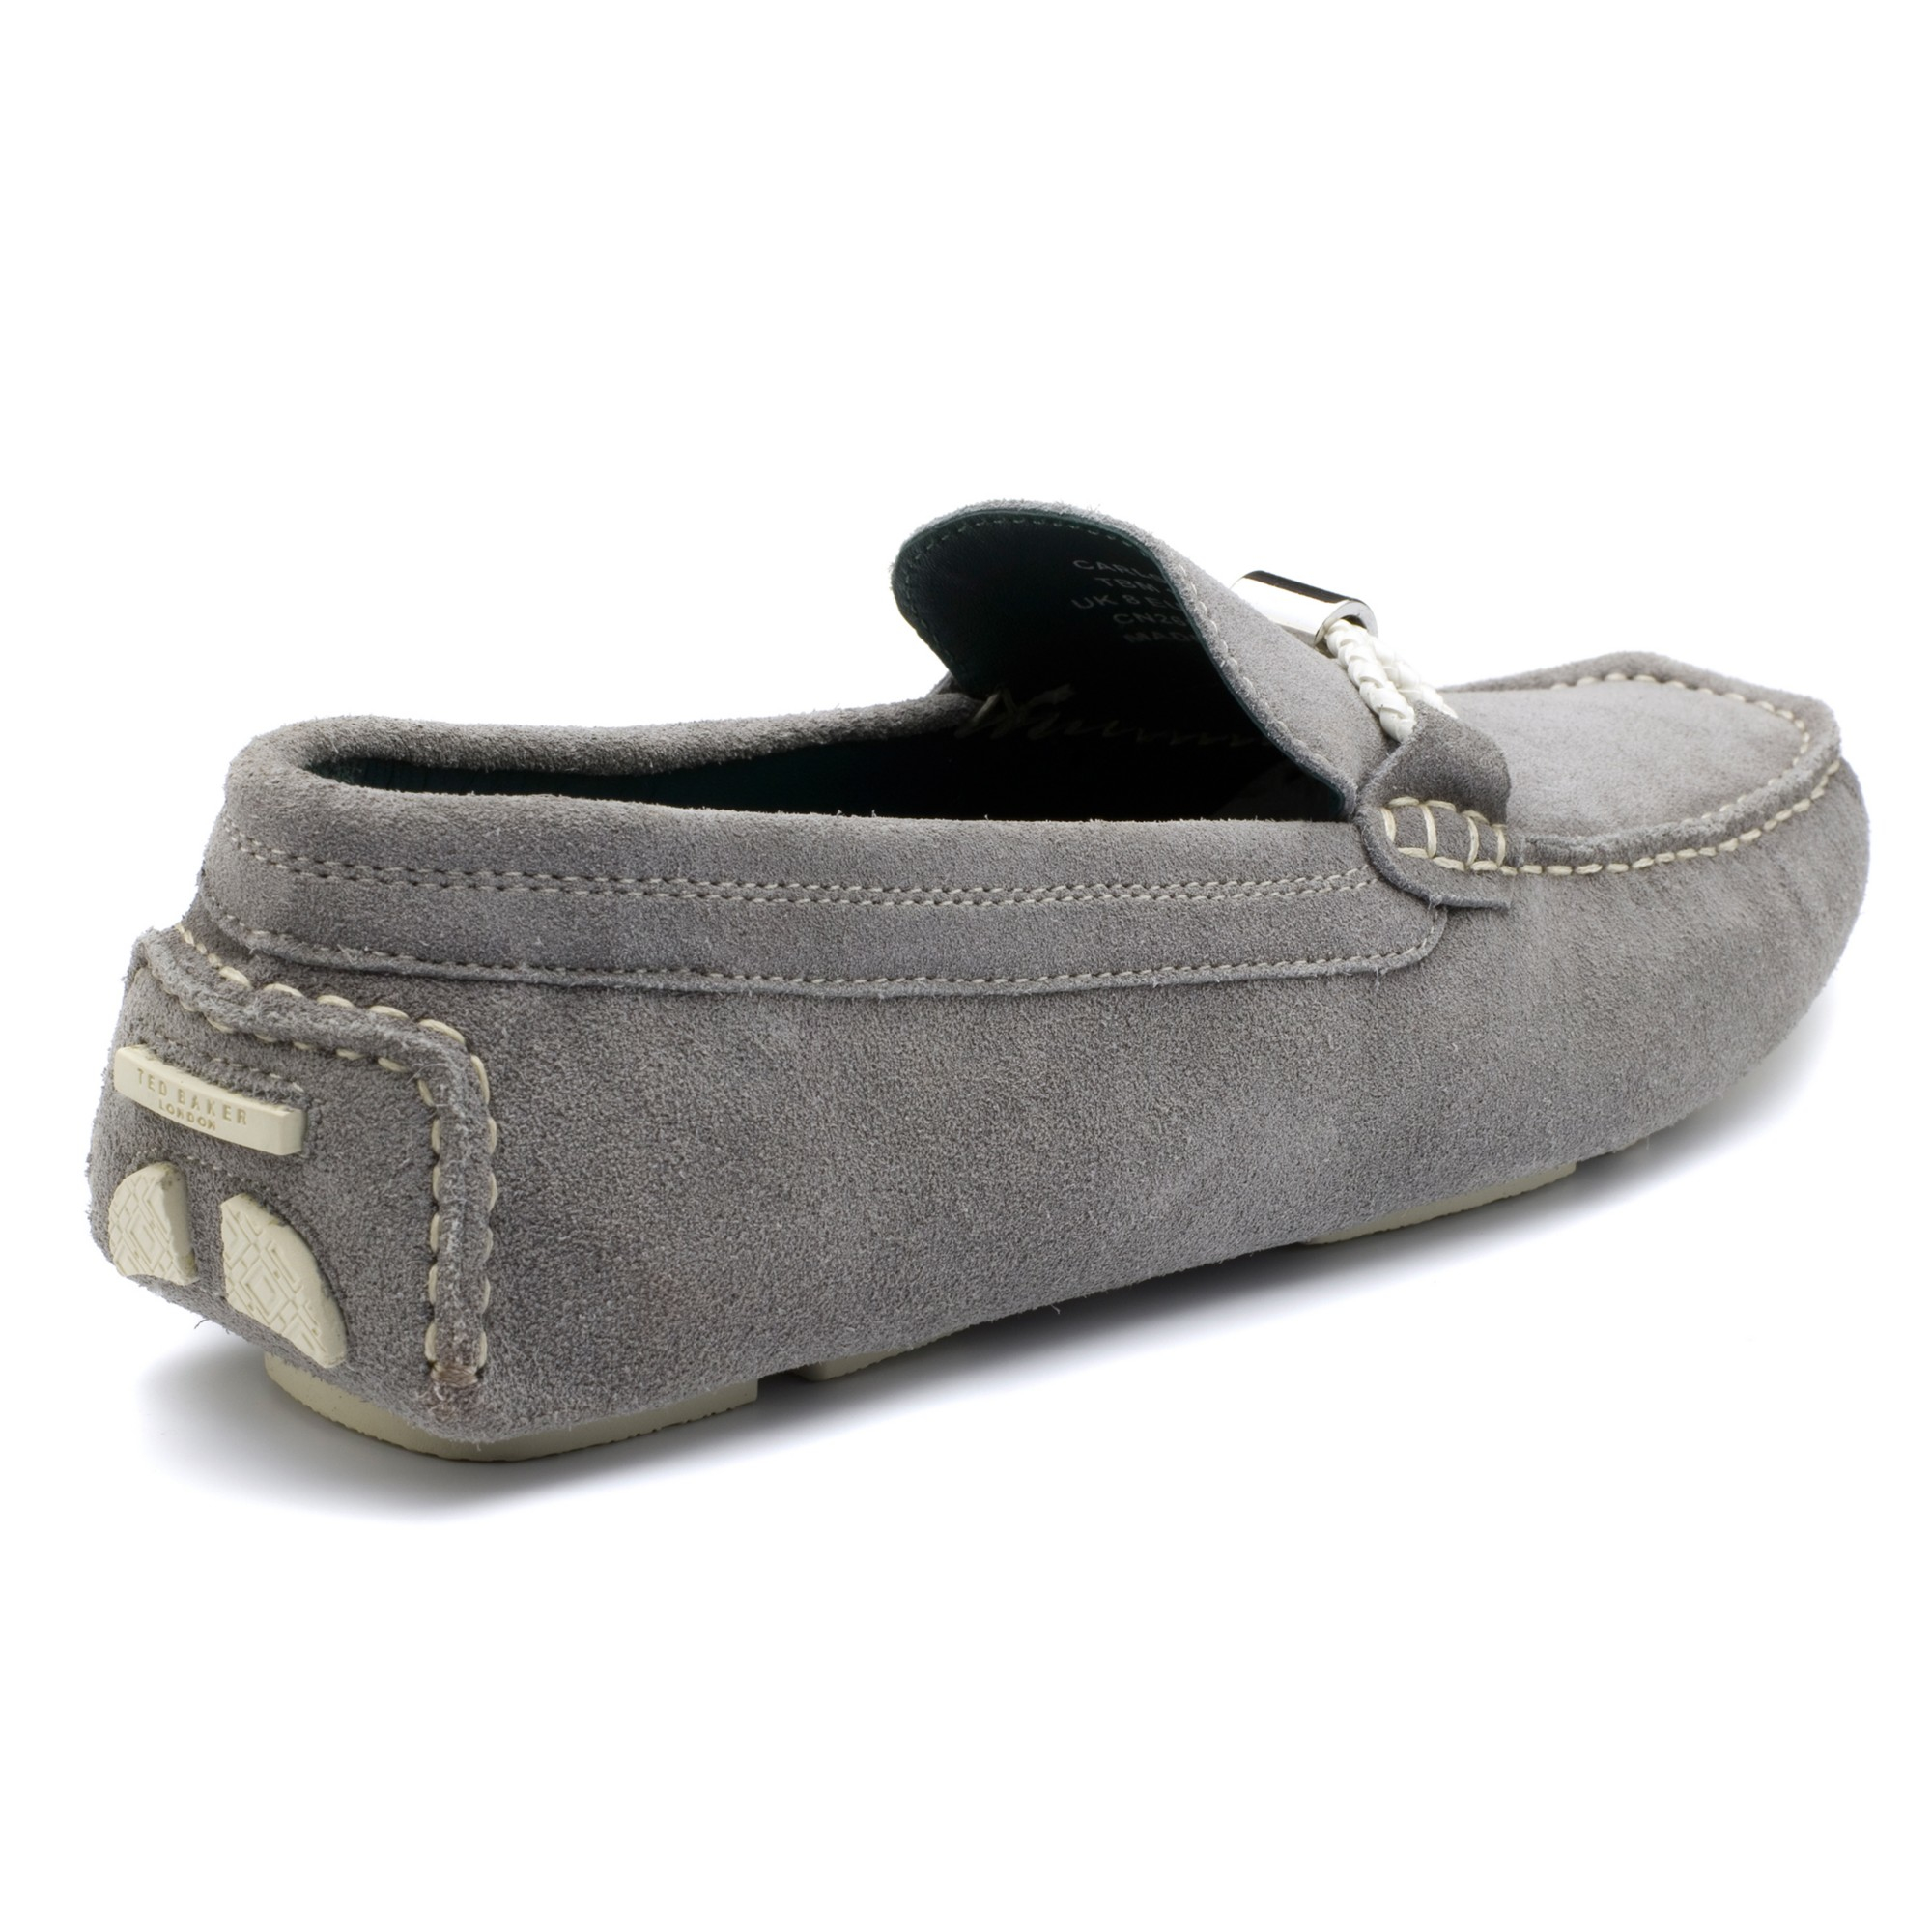 1c2675f94ce Ted Baker Carlsun 2 Slip-on Suede Loafers in Gray for Men - Lyst